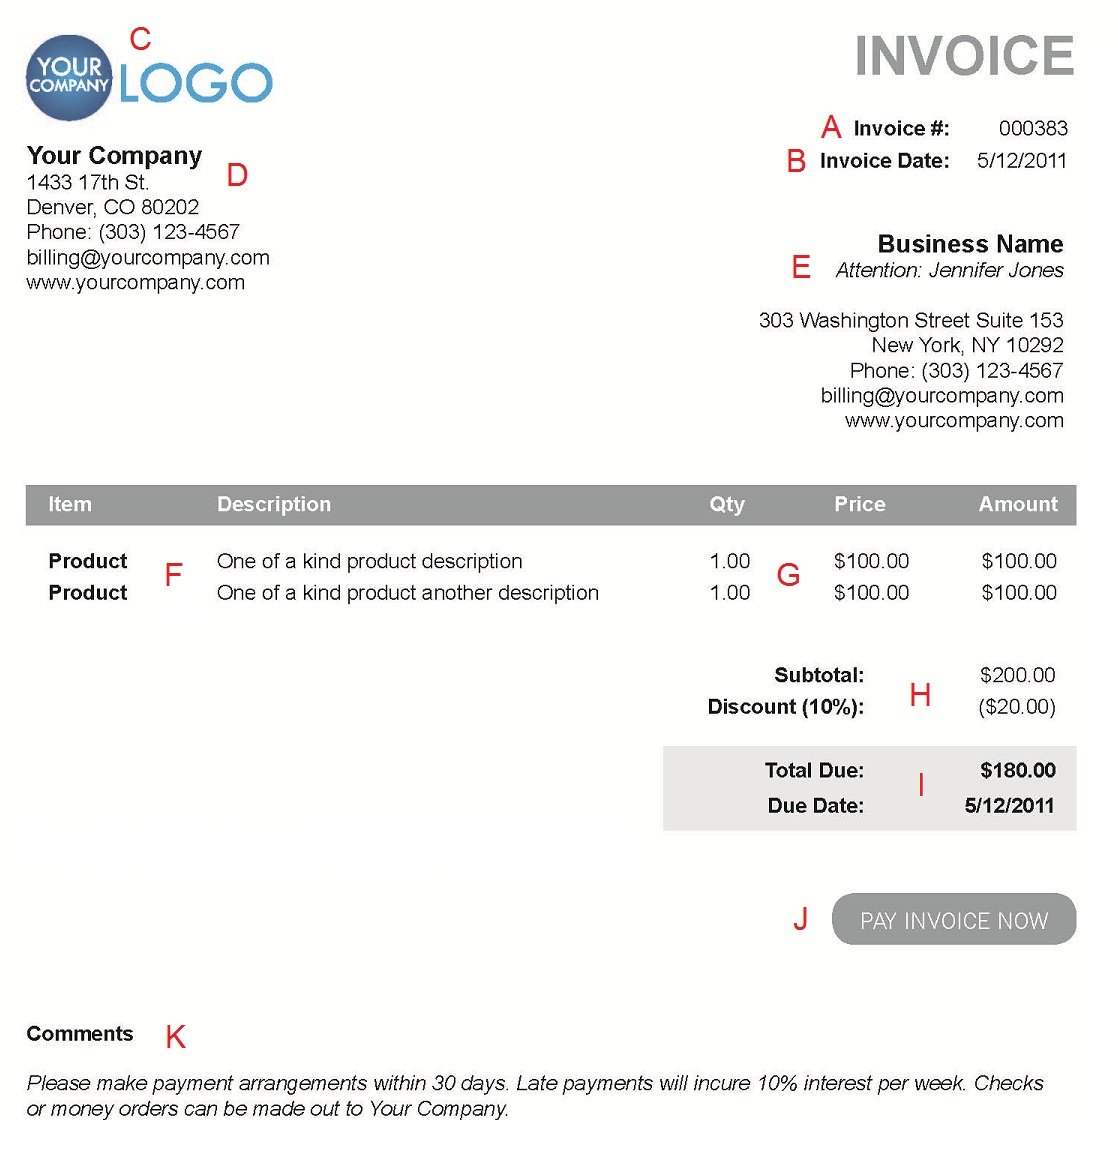 Ultrablogus  Surprising The  Different Sections Of An Electronic Payment Invoice With Fascinating A  With Charming Crm Invoicing Also Tax Invoice Excel Format In Addition Copy Of Invoice Form And Make Your Own Invoice Online Free As Well As Toyota Invoice Price Holdback Additionally Print Free Invoices From Paysimplecom With Ultrablogus  Fascinating The  Different Sections Of An Electronic Payment Invoice With Charming A  And Surprising Crm Invoicing Also Tax Invoice Excel Format In Addition Copy Of Invoice Form From Paysimplecom